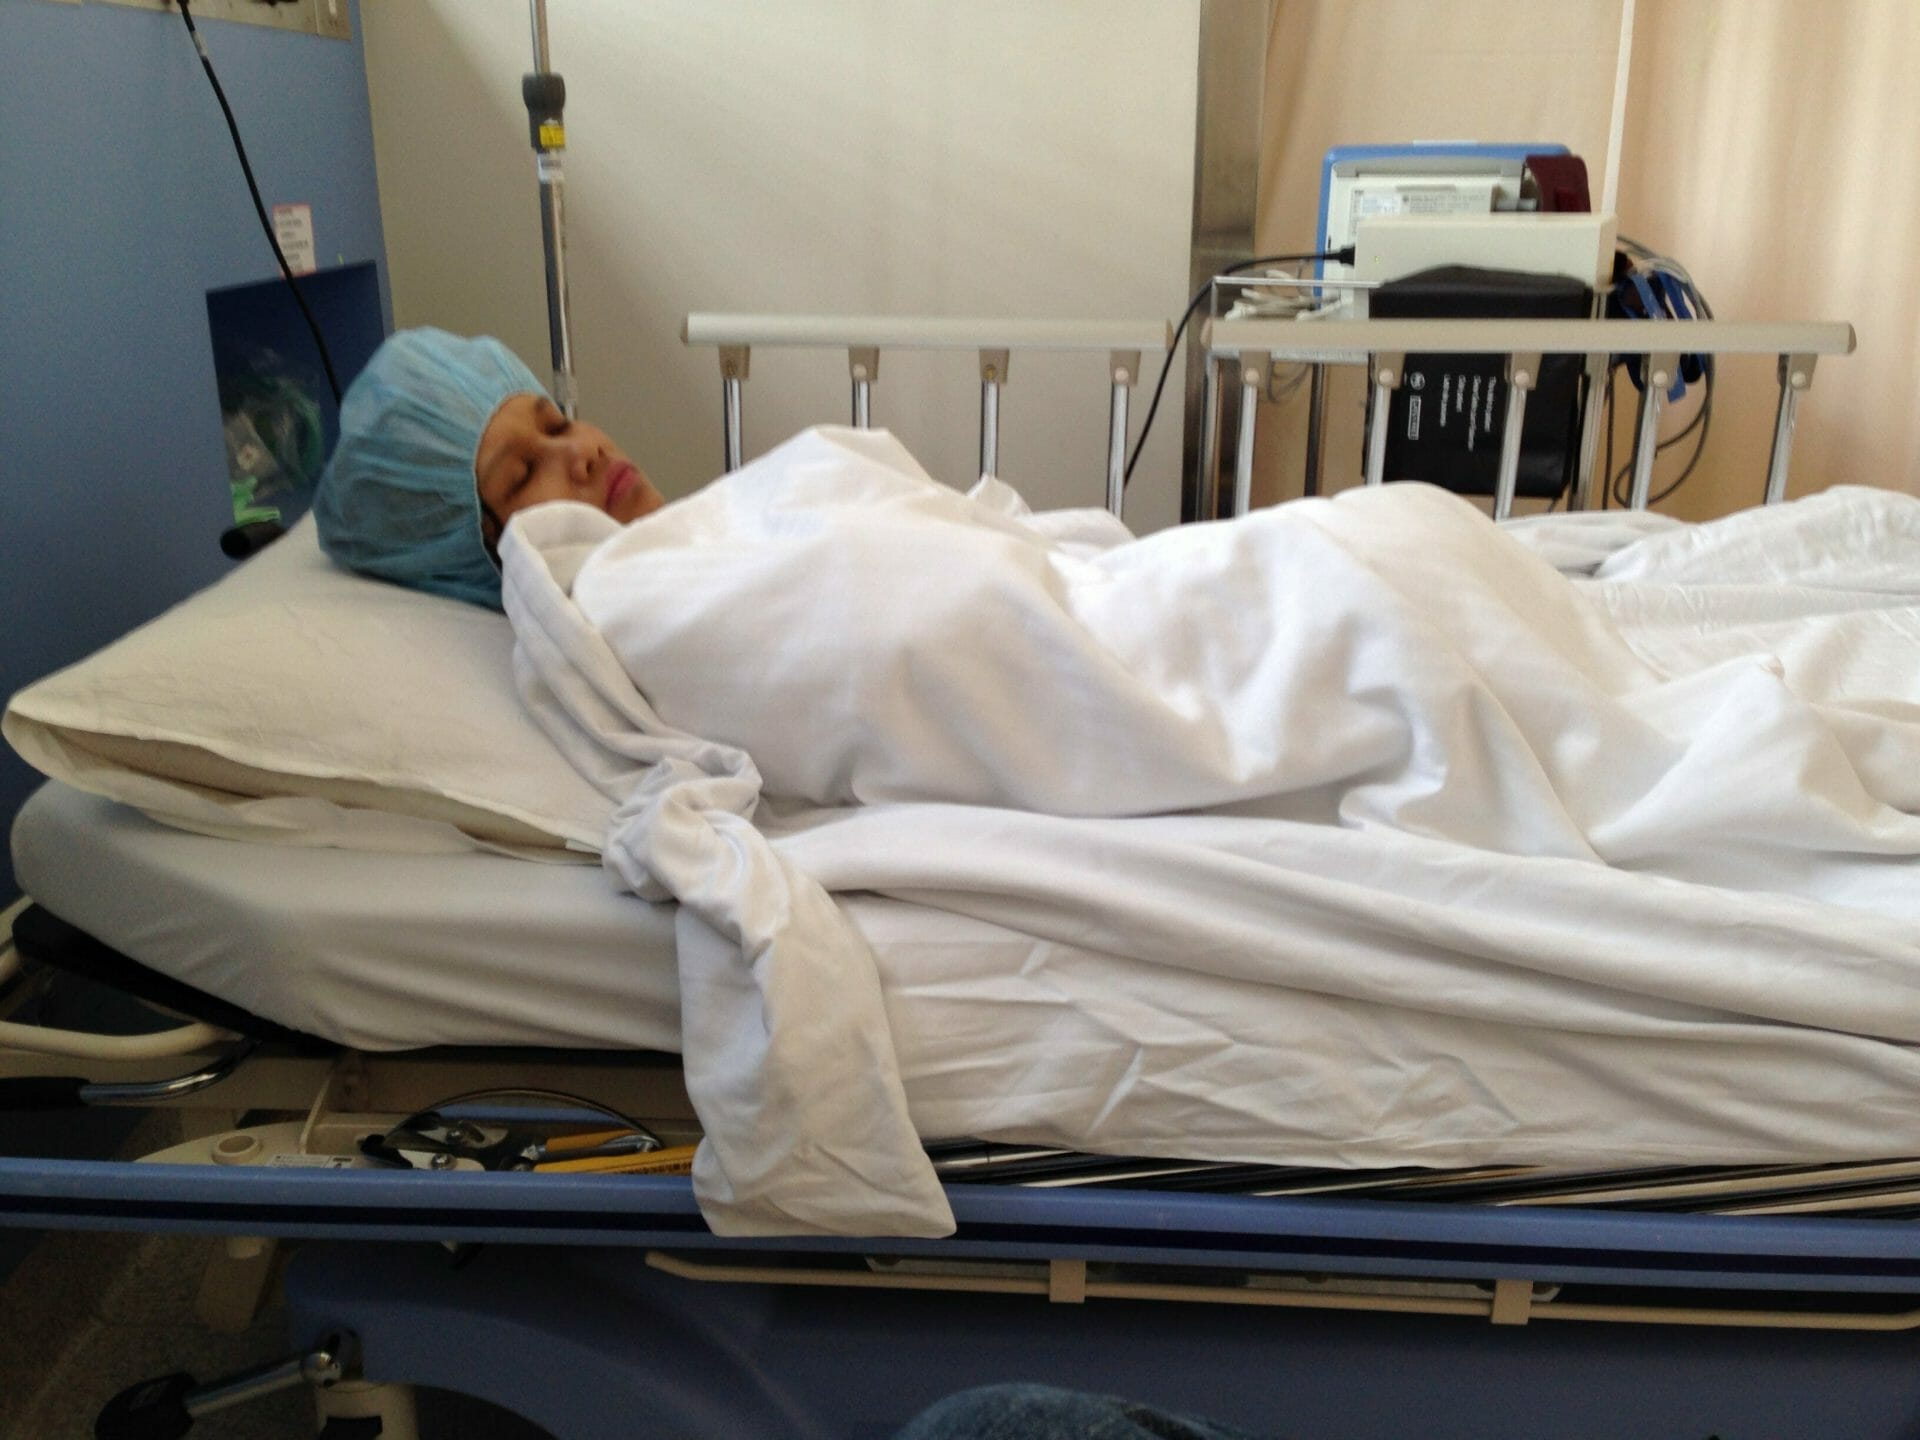 Author lying on a hospital bed wrapped in a blanket.